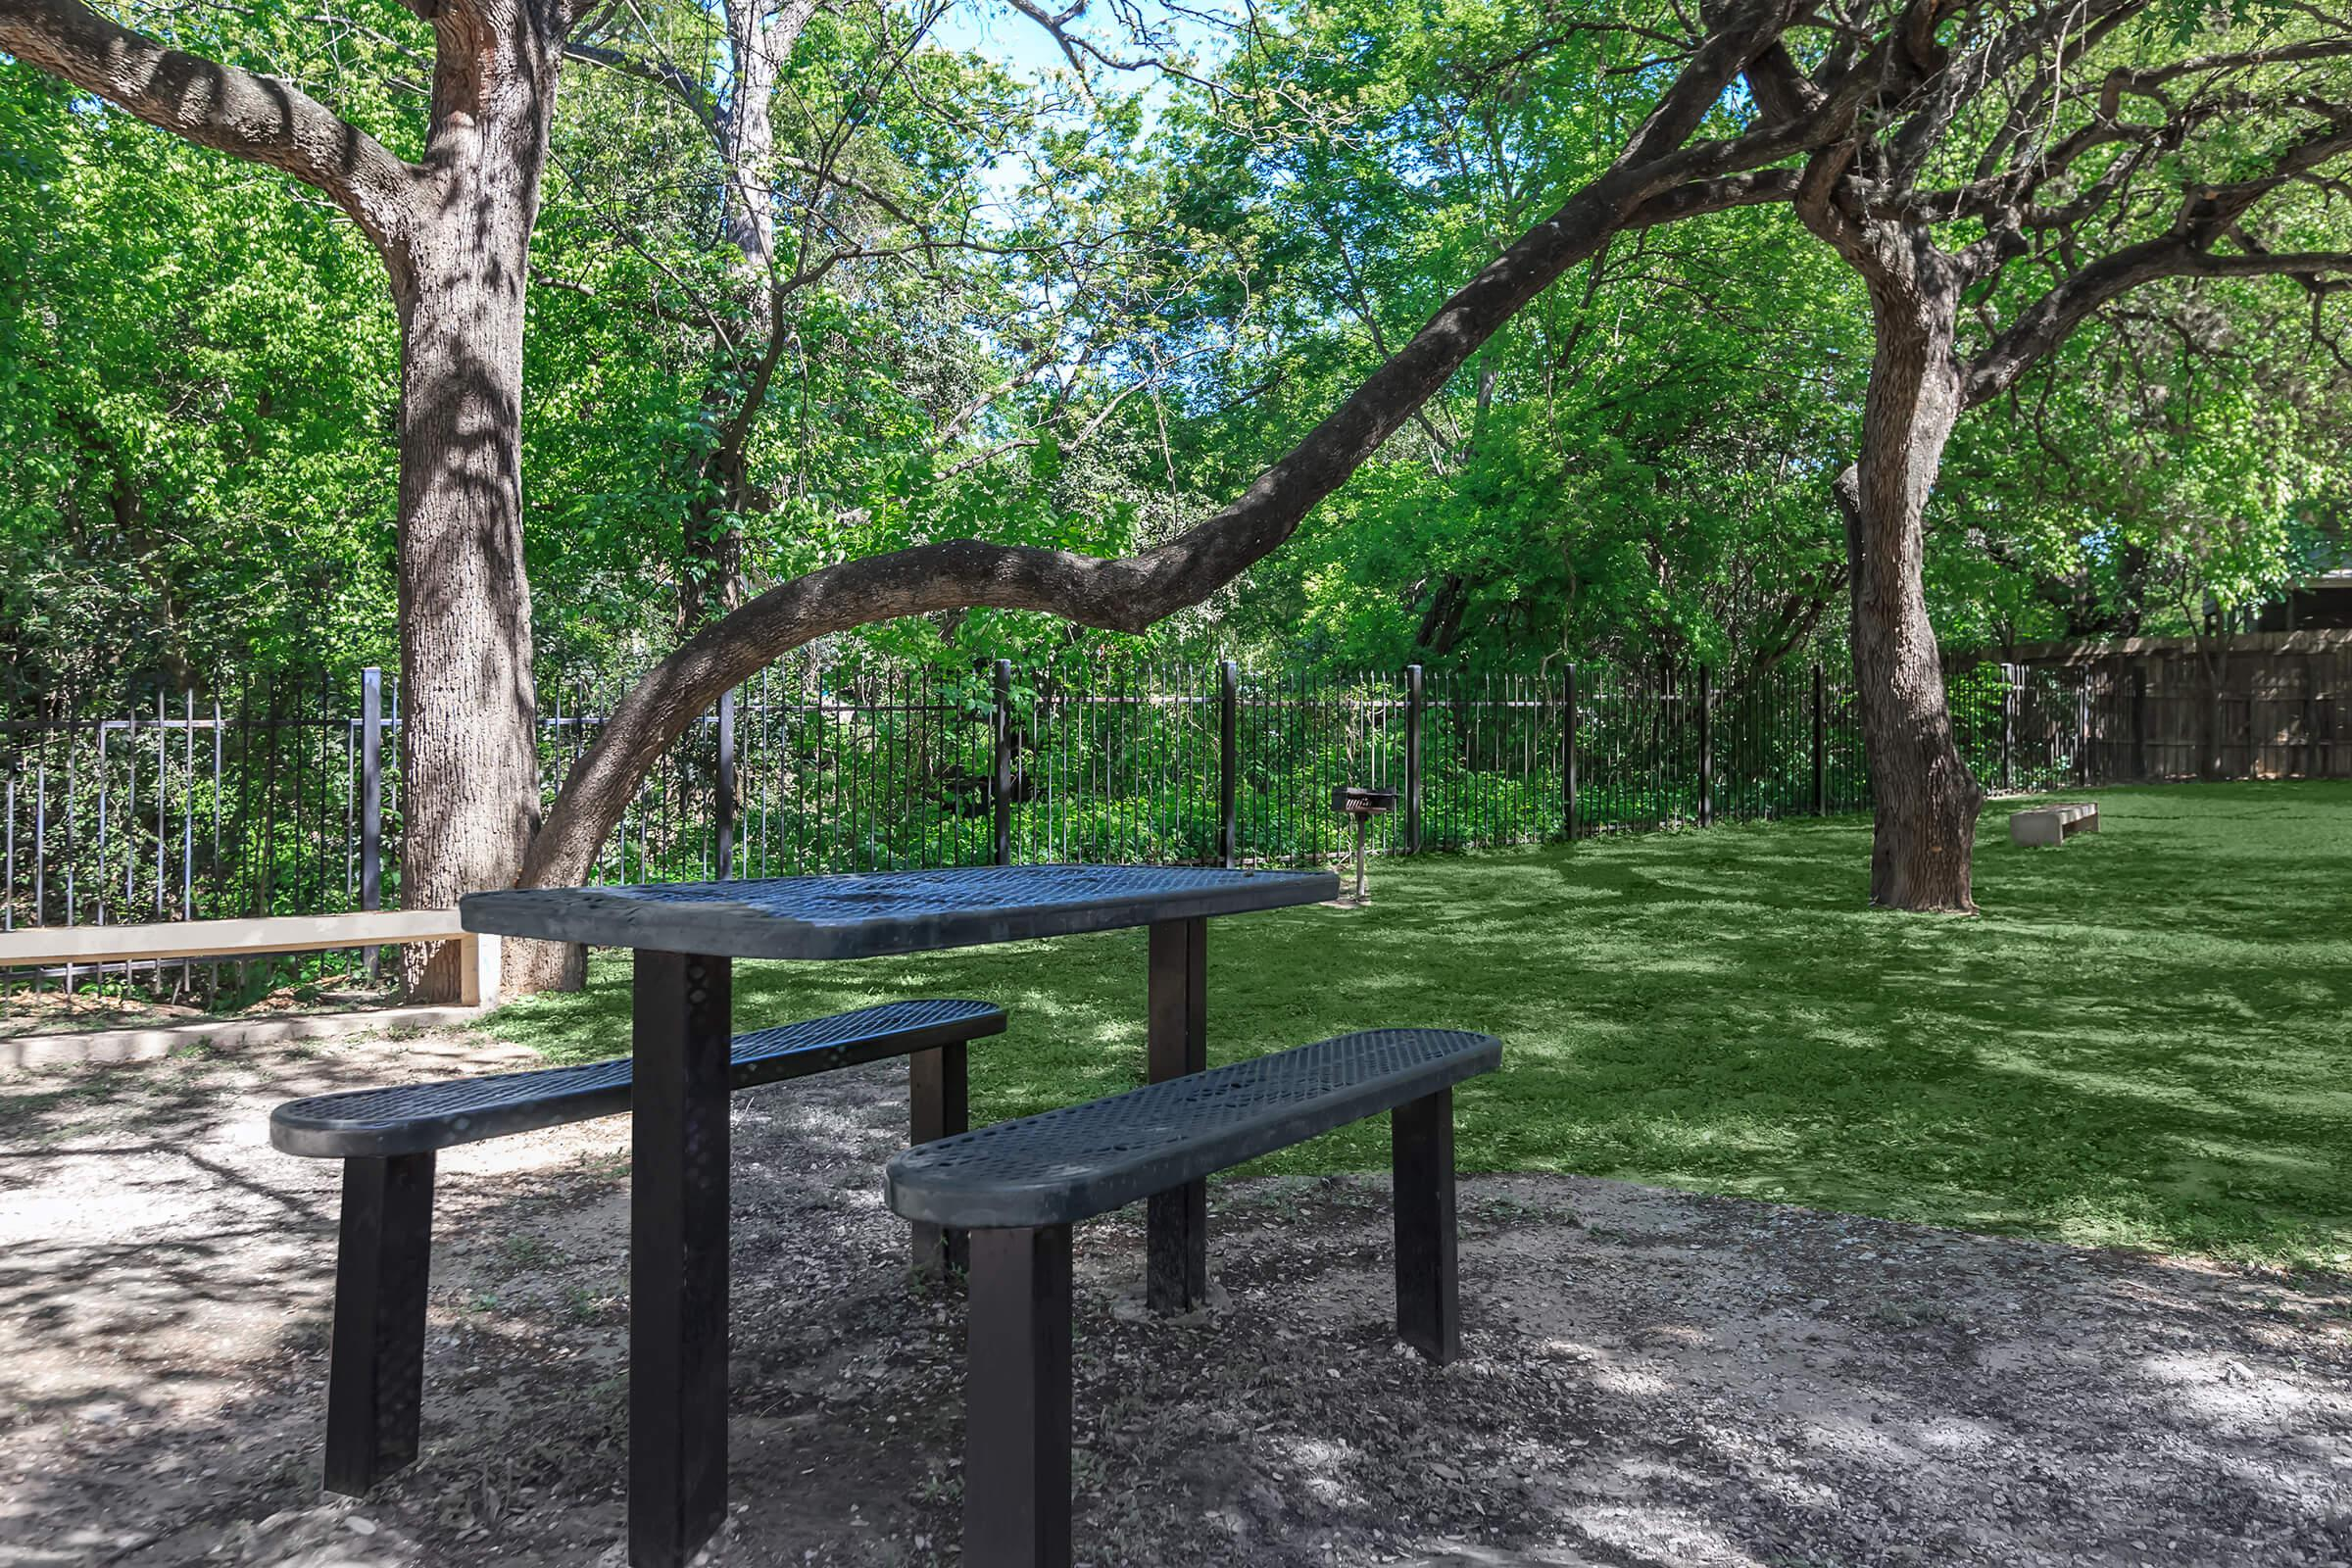 an empty park bench next to a tree